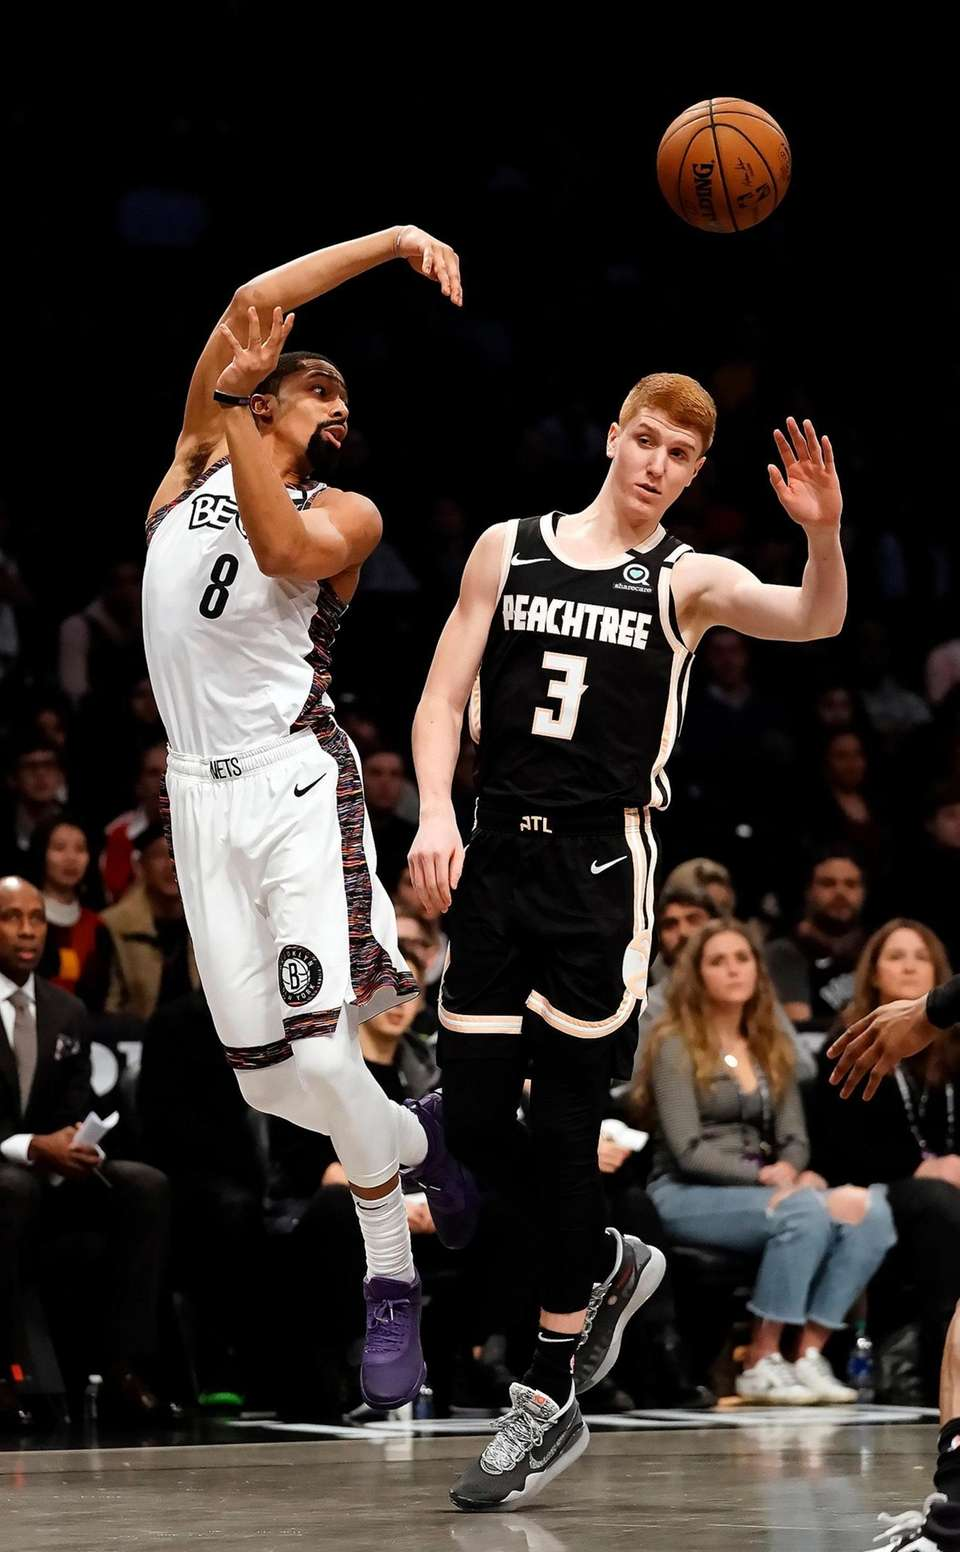 Brooklyn Nets guard Spencer Dinwiddie (8) with the